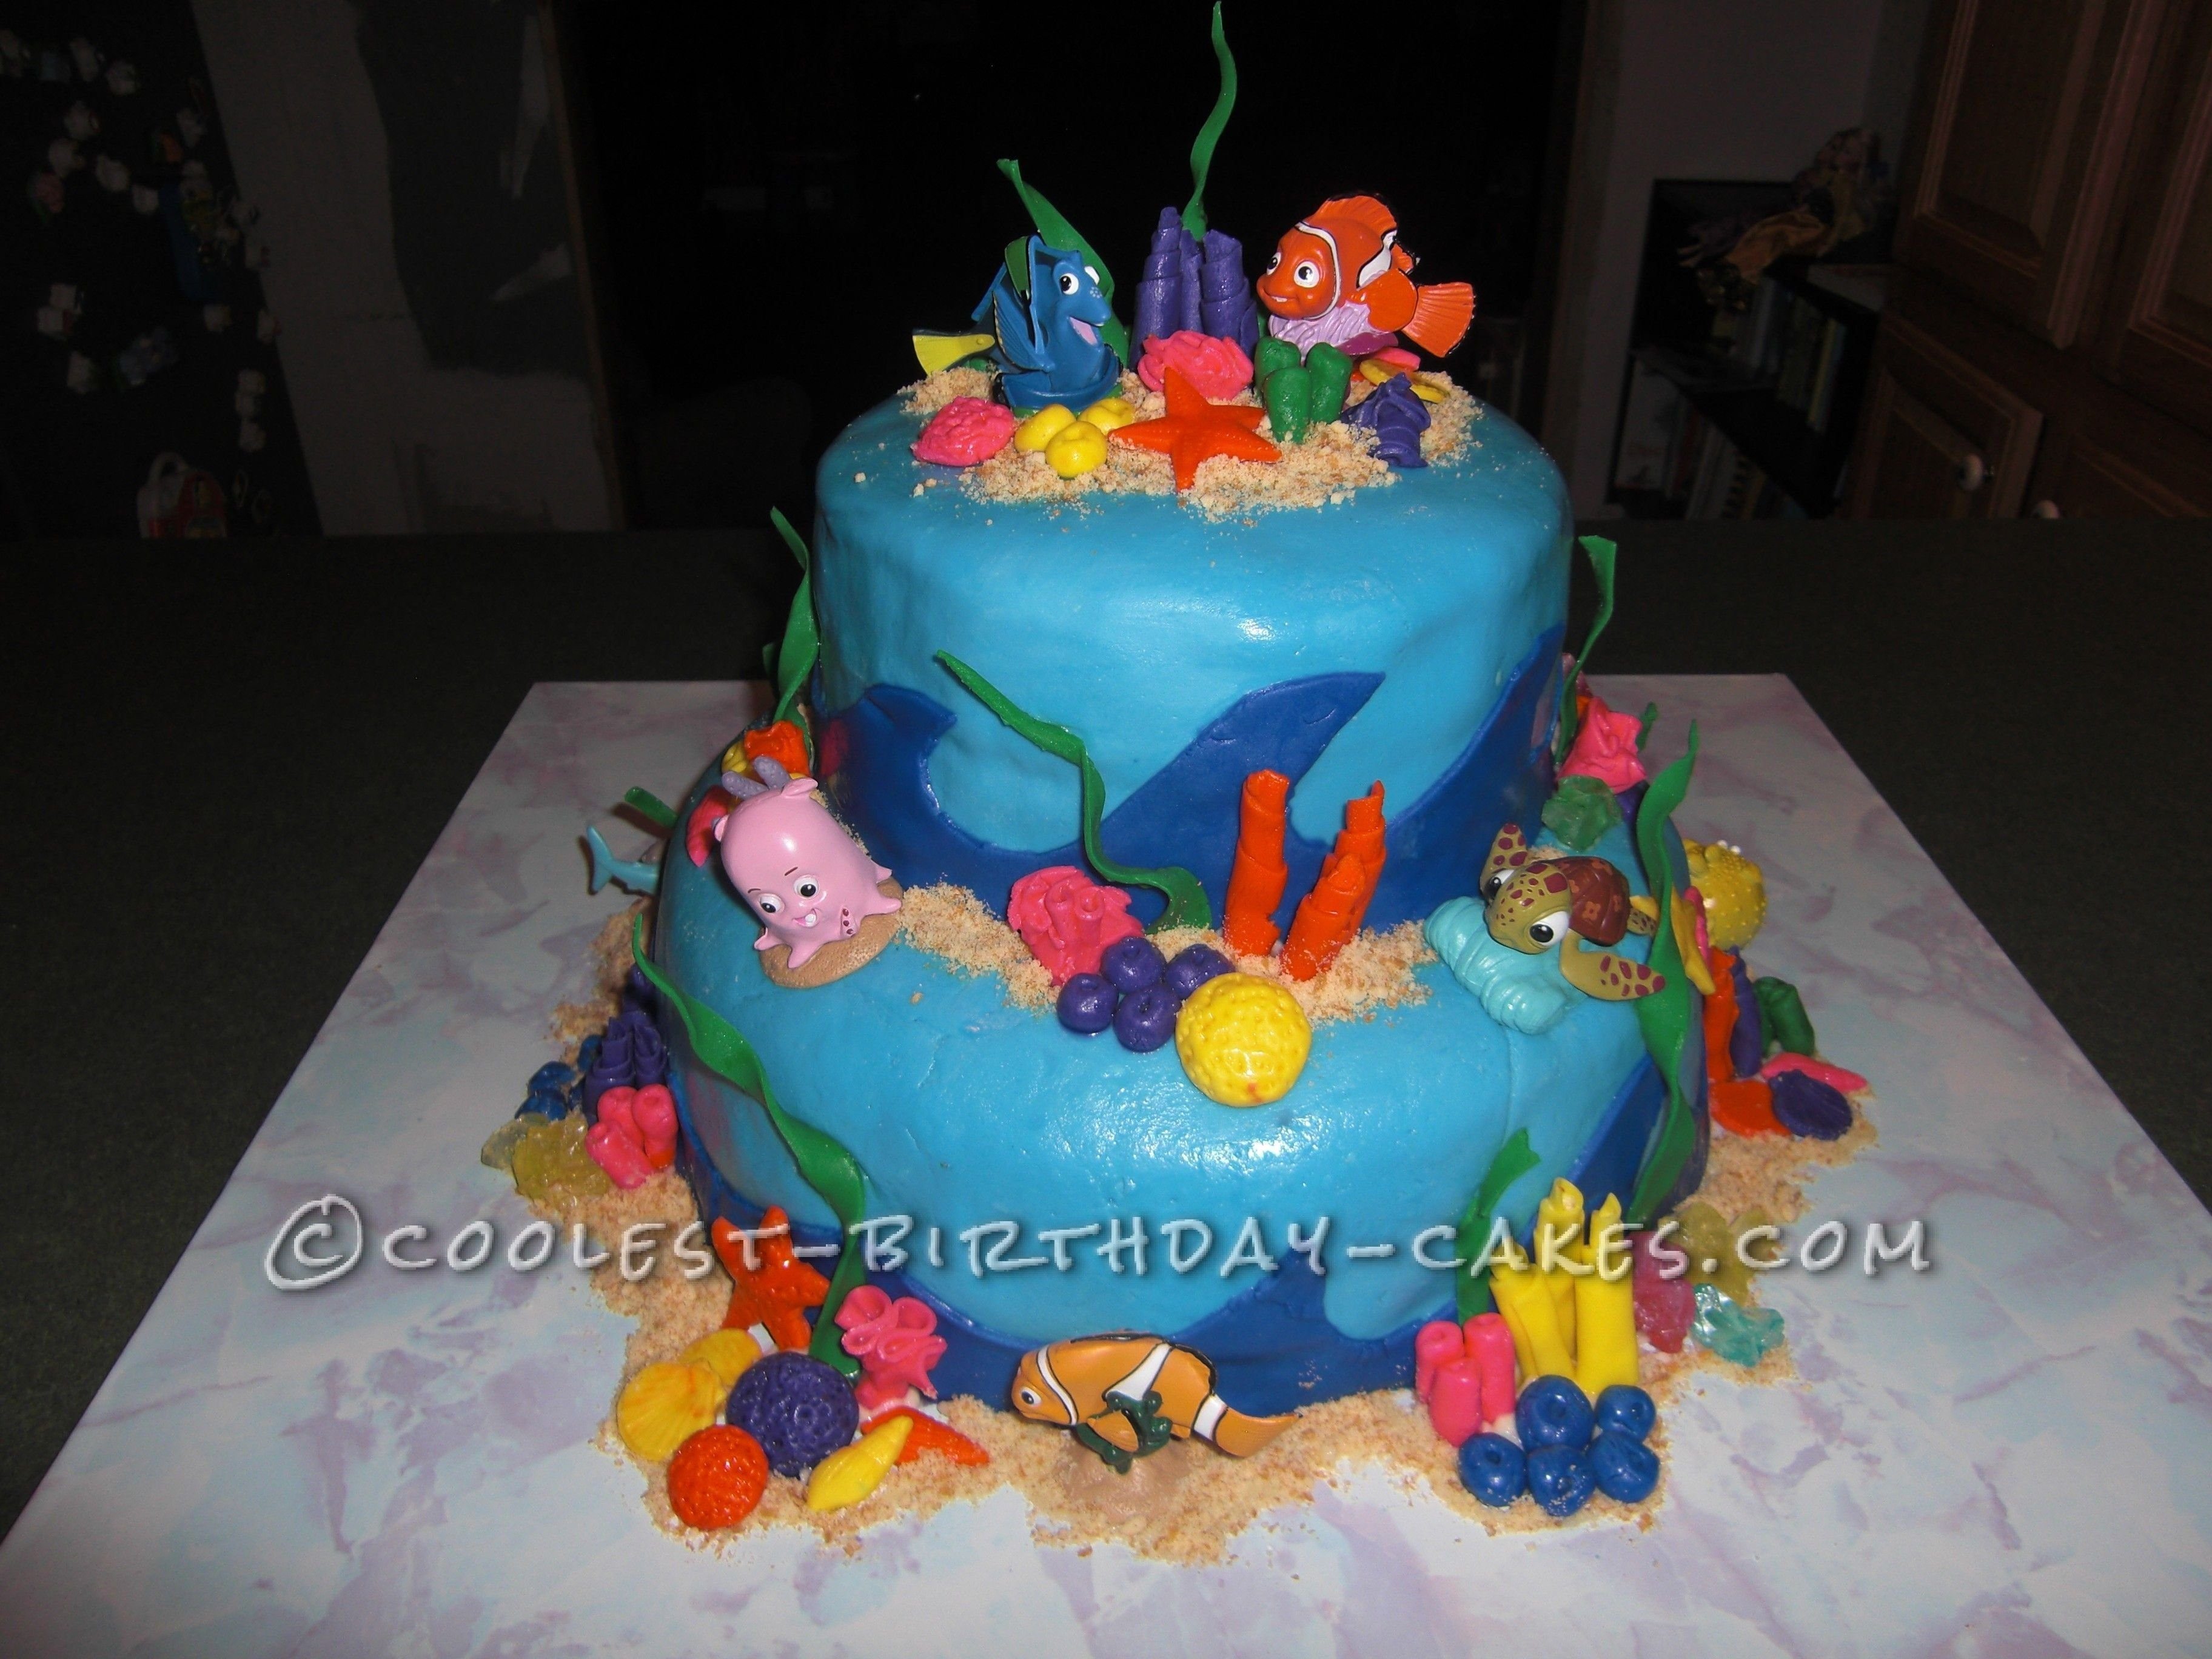 10 Fantastic 3 Year Old Birthday Cake Ideas coolest nemo birthday cake for a 3 year old boy birthday cakes